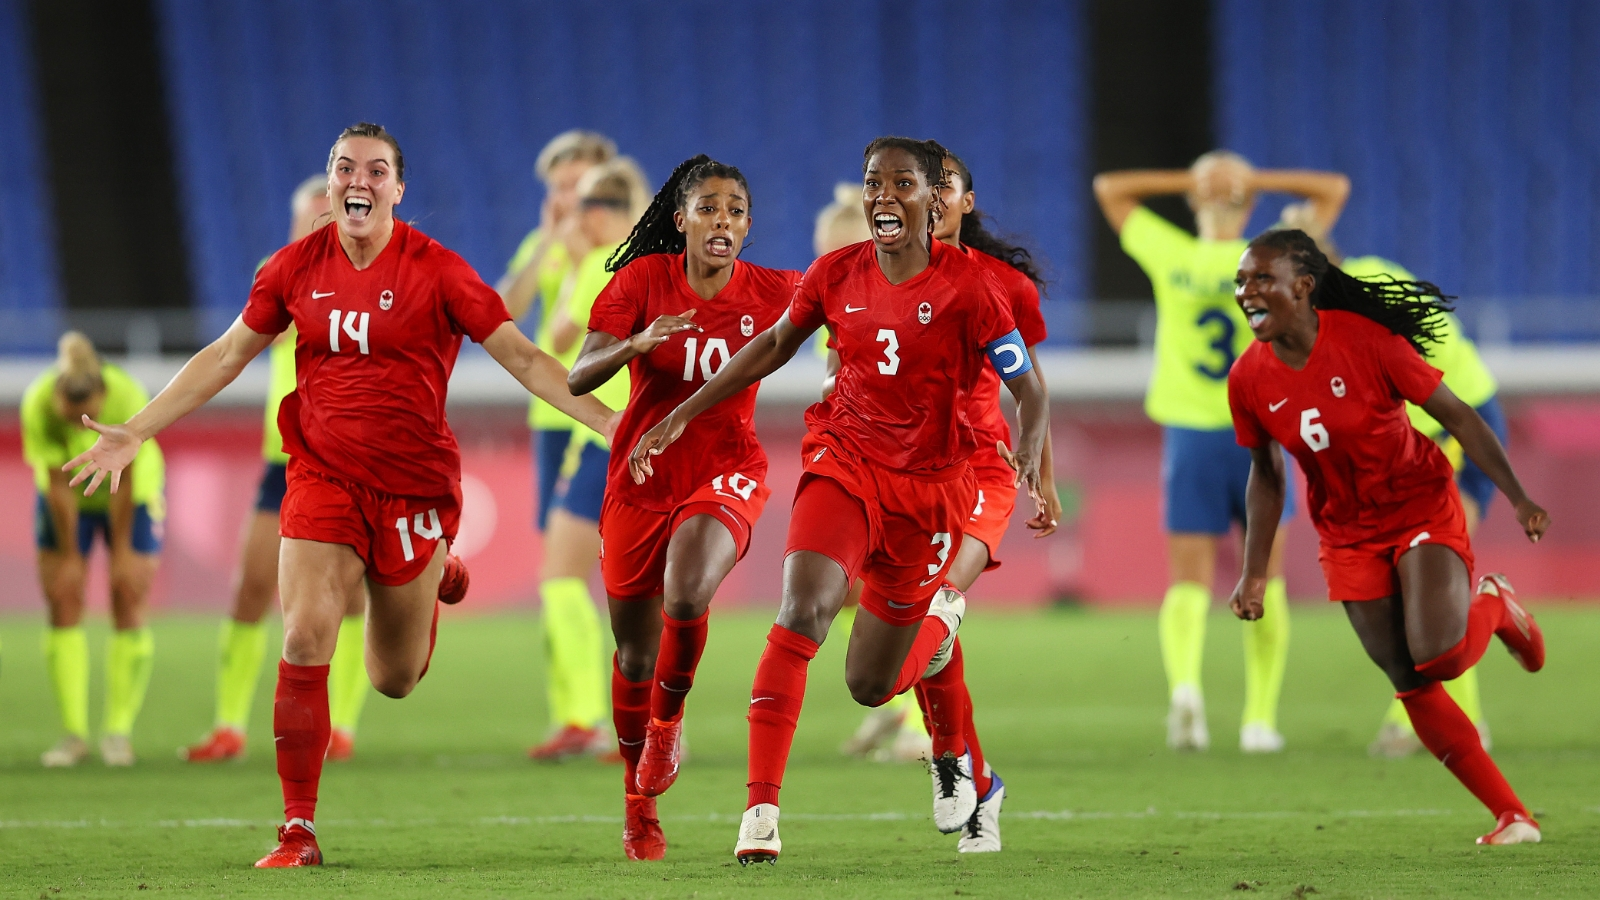 Canada defeat Sweden to win country's first ever Olympic gold medal in women's football